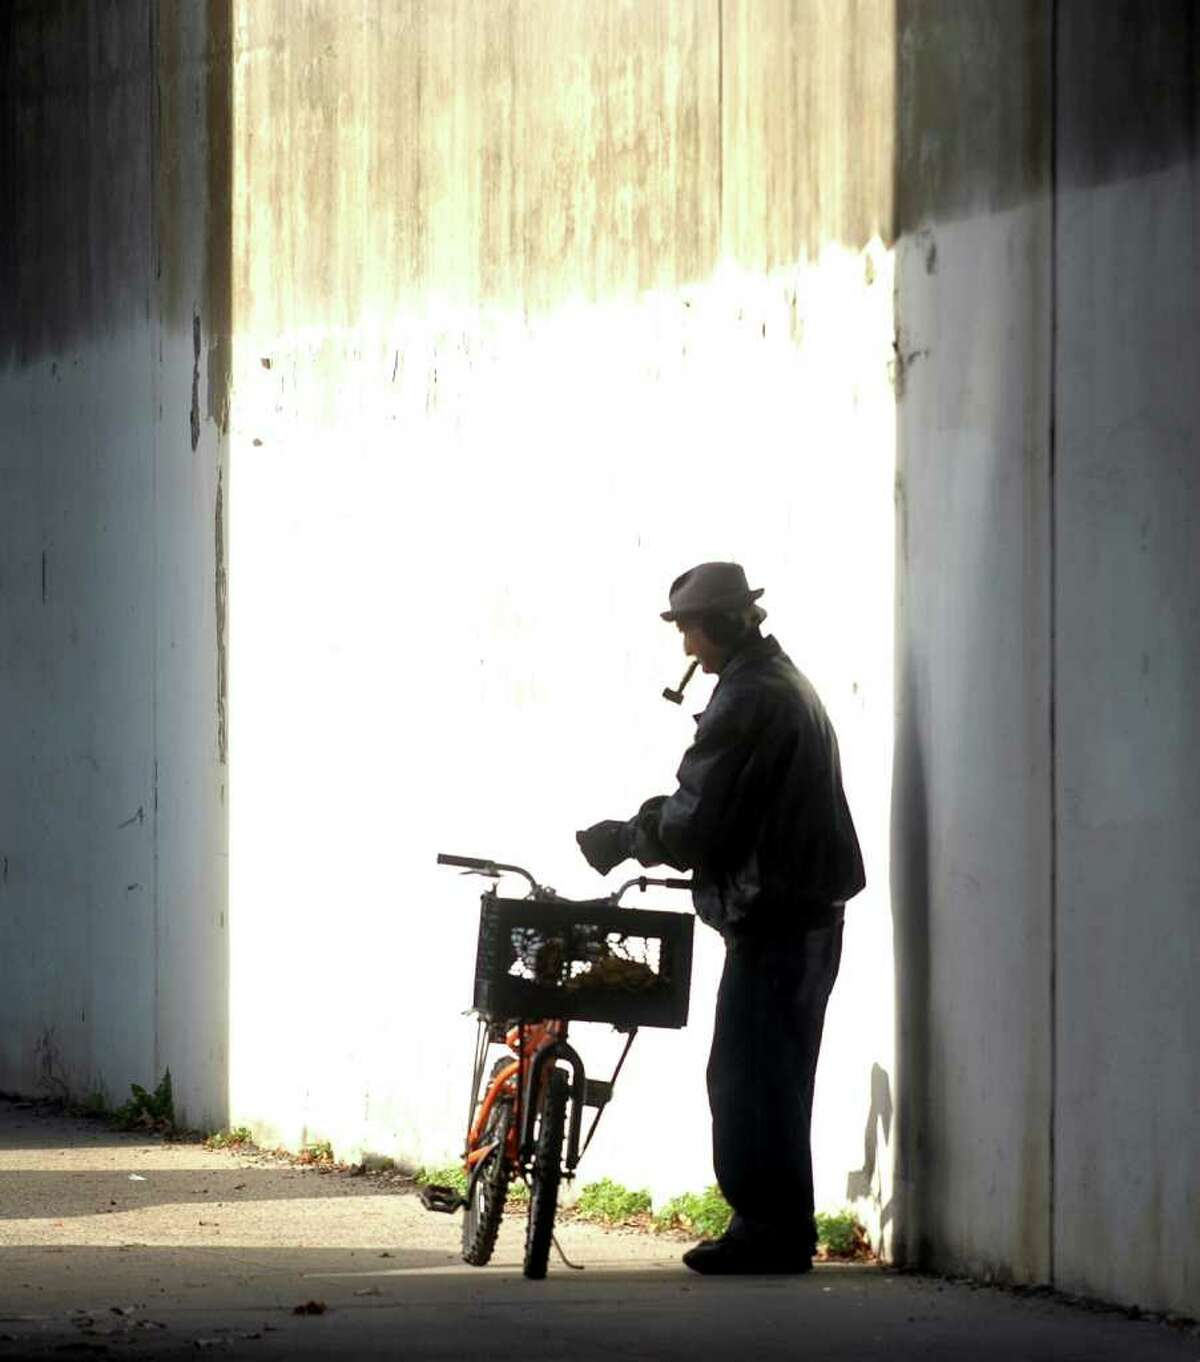 A man stops to light his pipe before he continues along State Street in Bridgeport Conn. on Friday November 19, 2010.